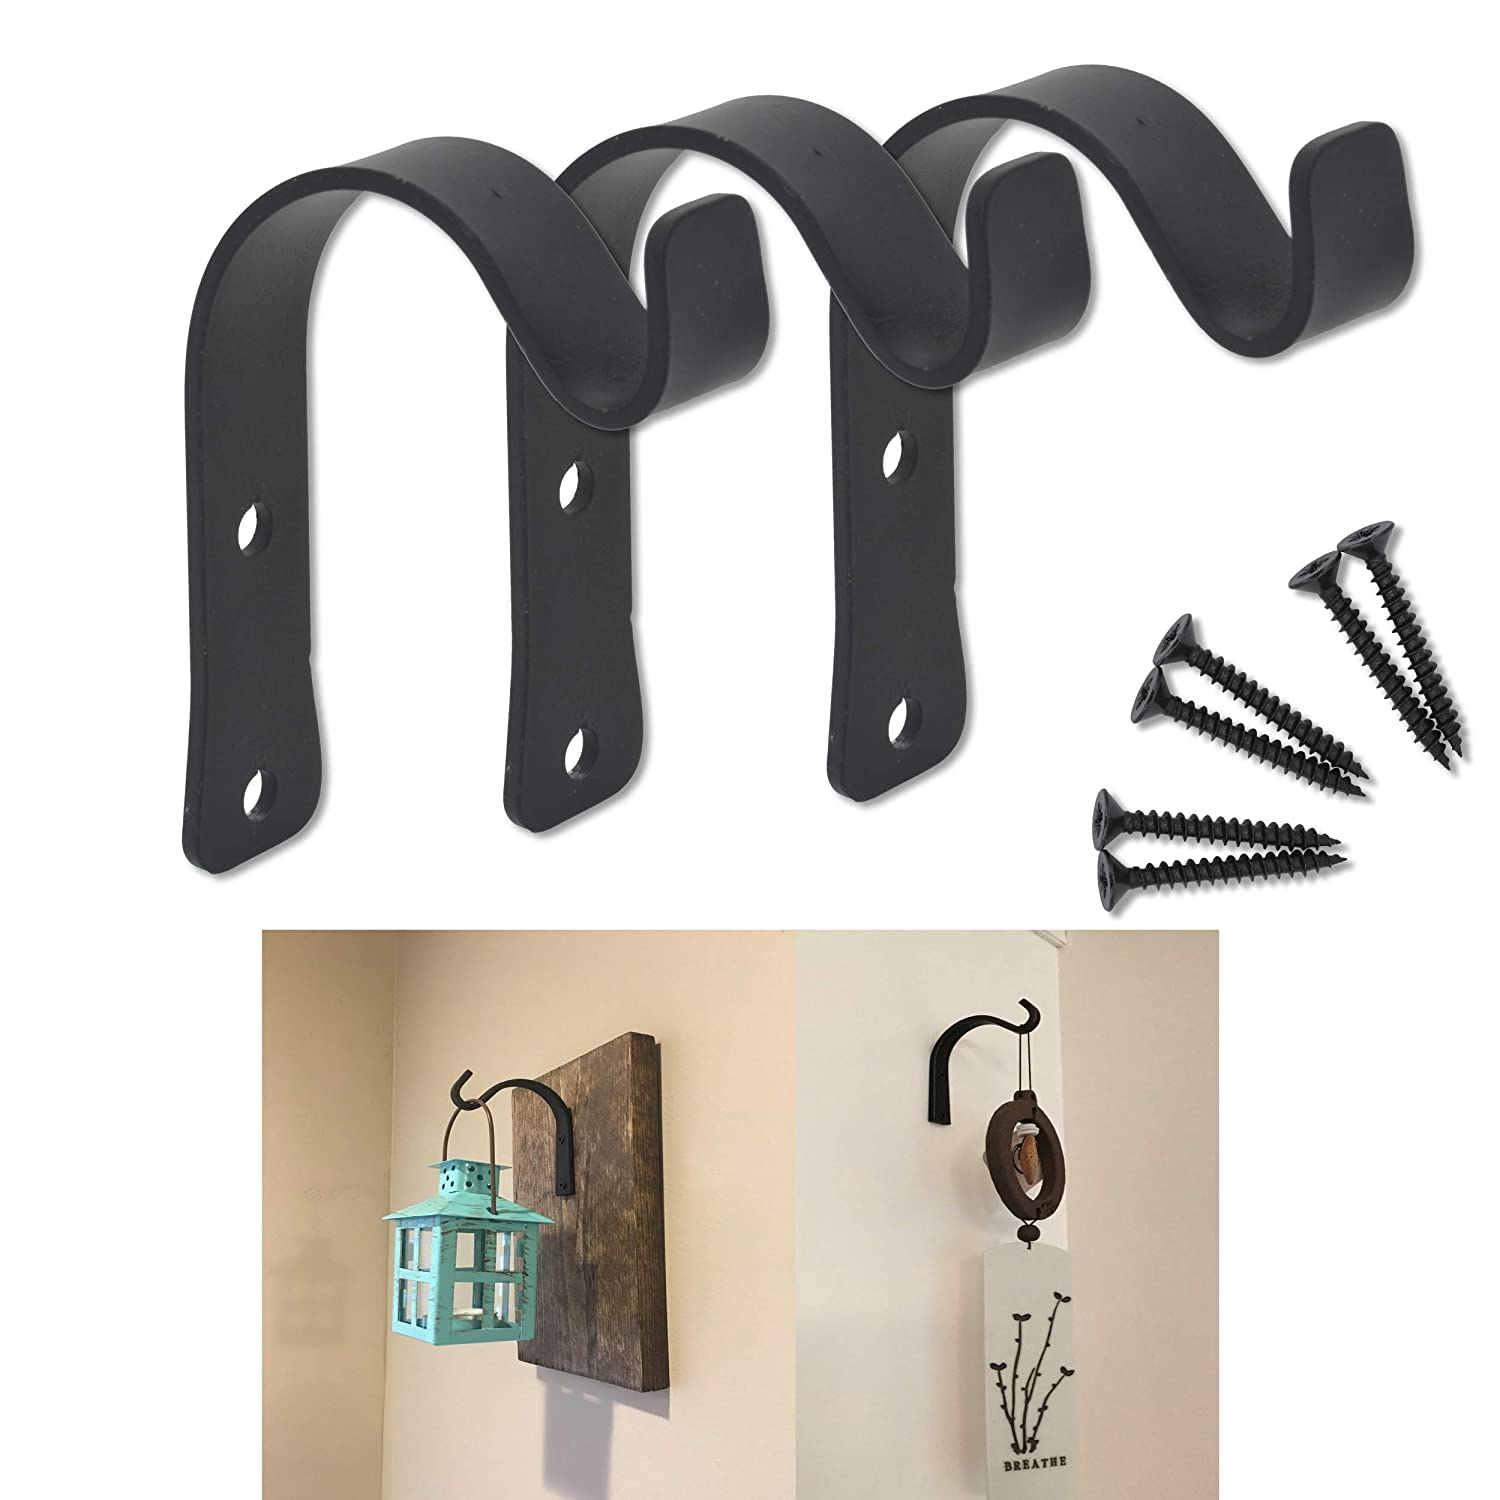 AddGrace 3 Pack Wrought Iron Hooks Wall Mounted Coat Towel Hooks for Coat,Scarf,Bag,Towel,Hat (3 Pack)